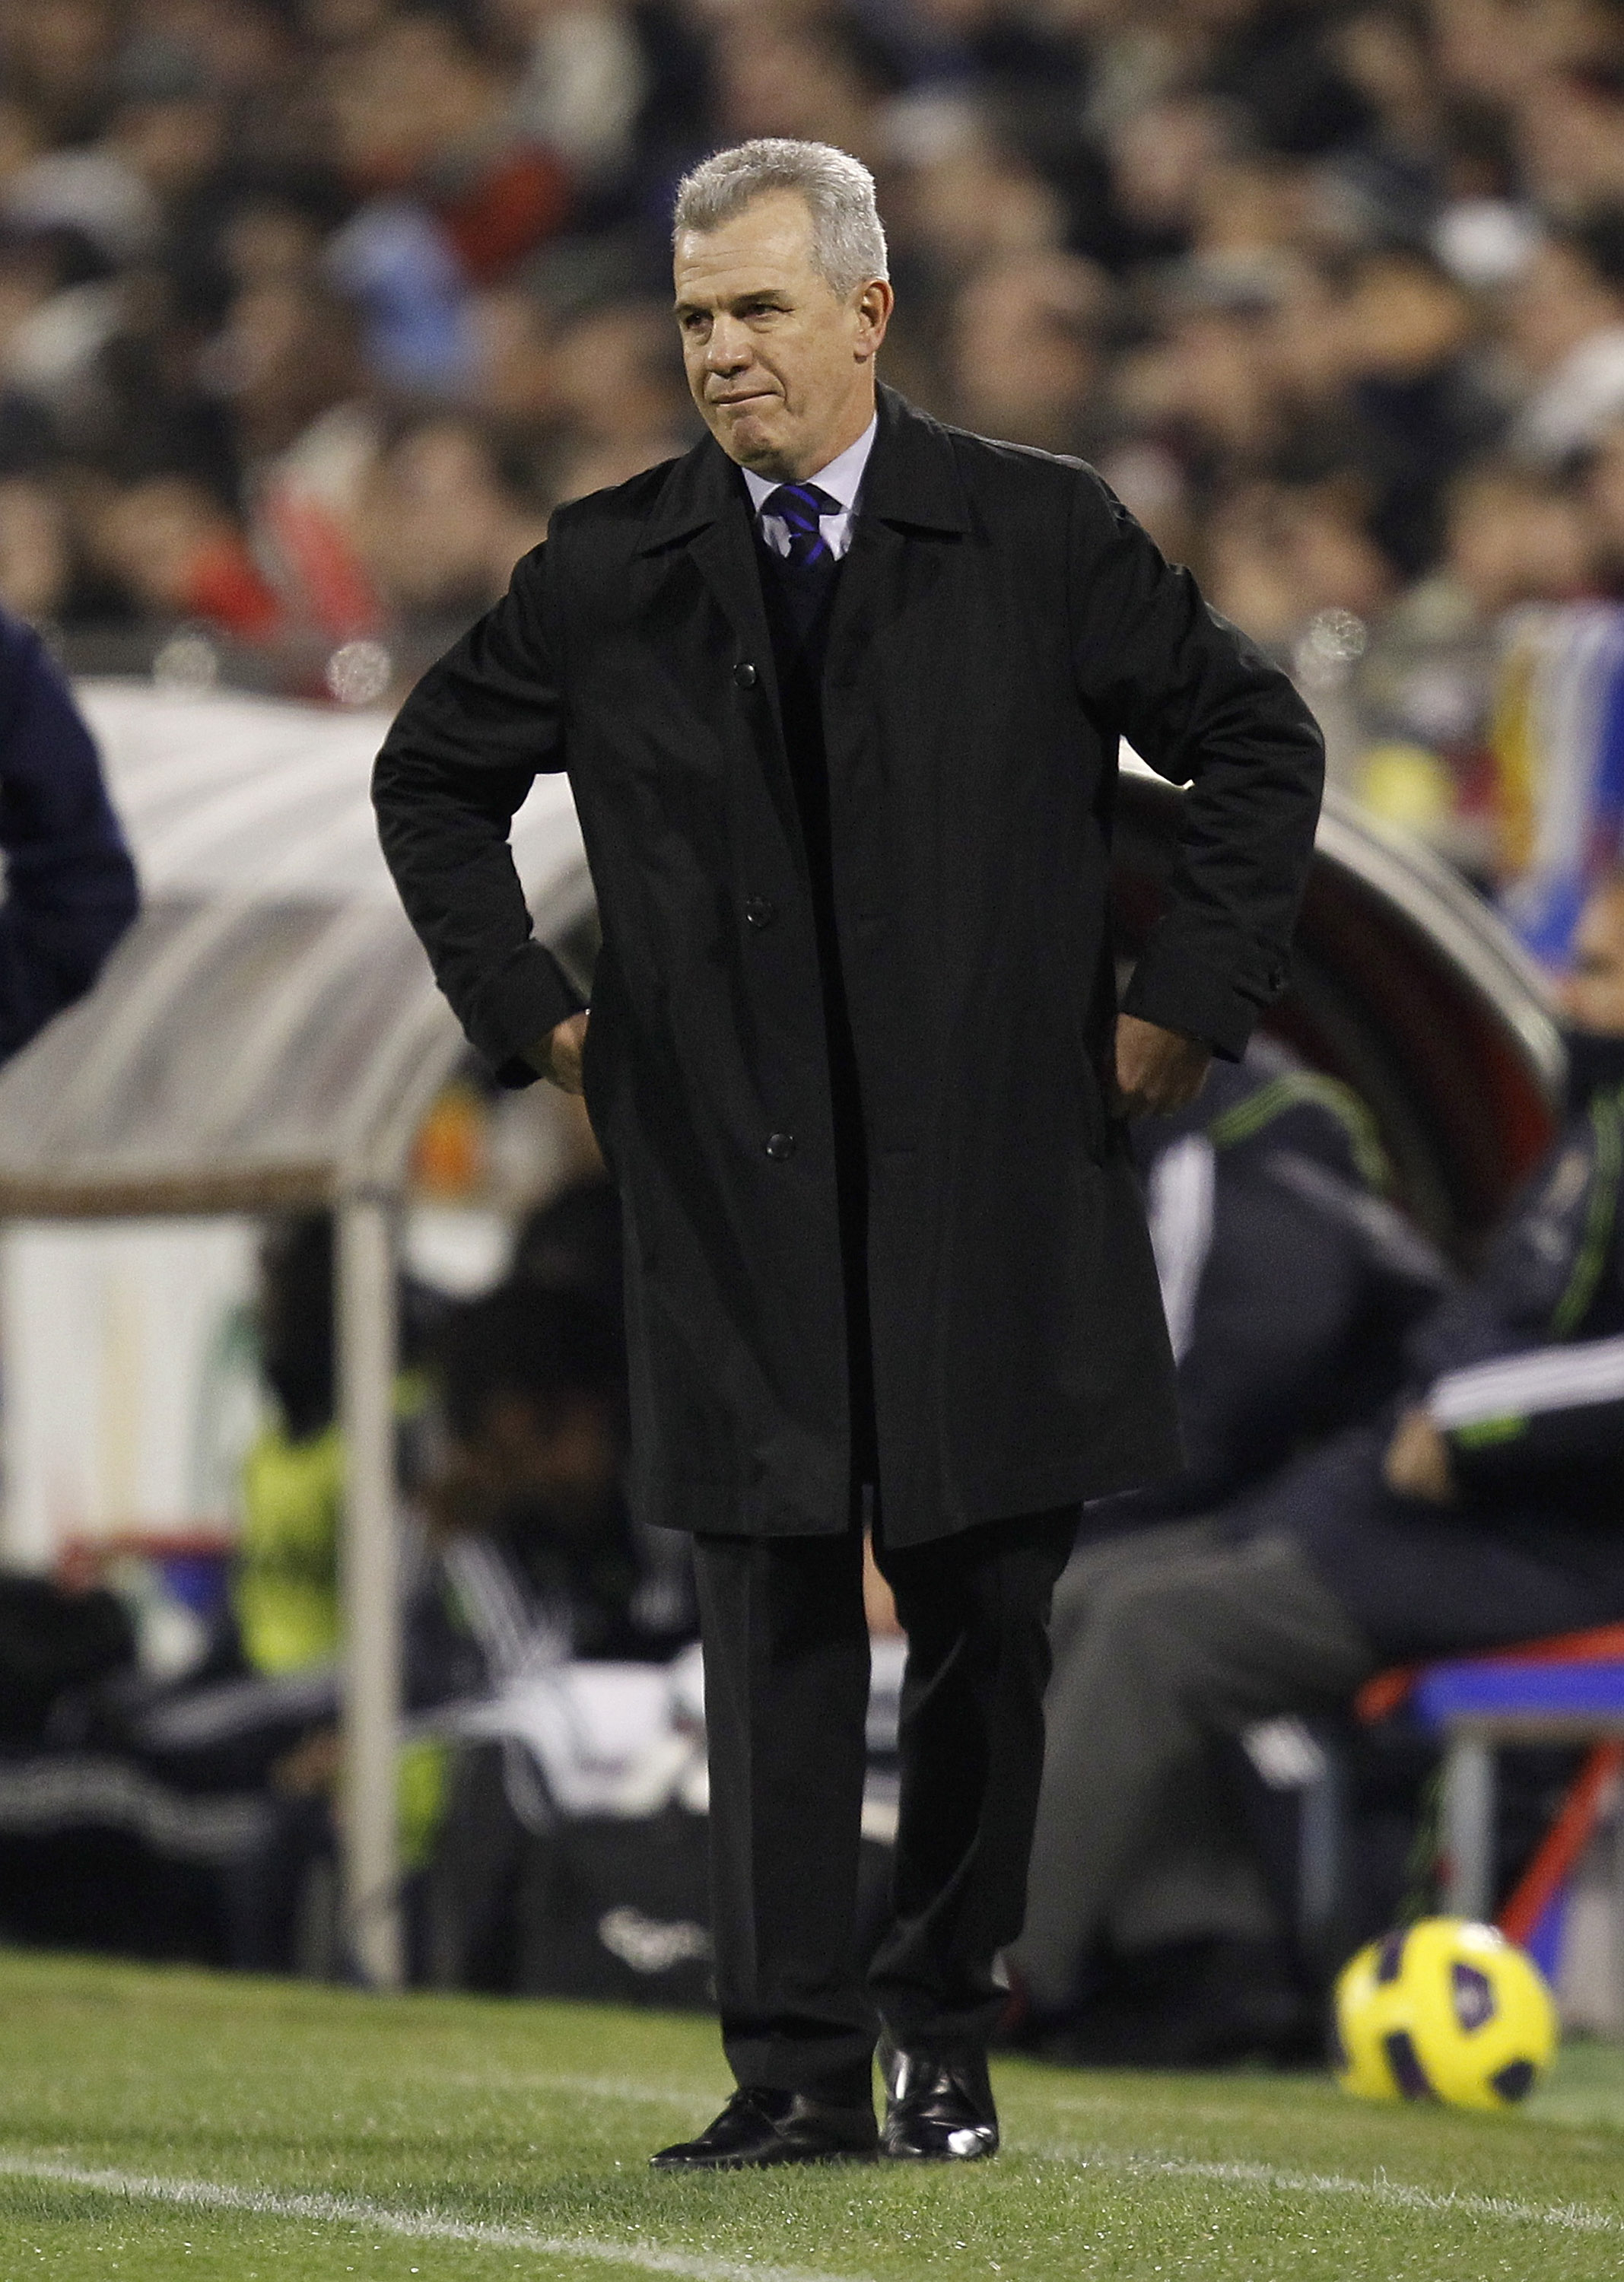 ZARAGOZA, SPAIN - DECEMBER 12: Head coach Javier Aguirre of Zaragoza reacts during the La Liga match between Real Zaragoza and Real Madrid at La Romareda stadium on December 12, 2010 in Zaragoza, Spain. (Photo by Angel Martinez/Getty Images)